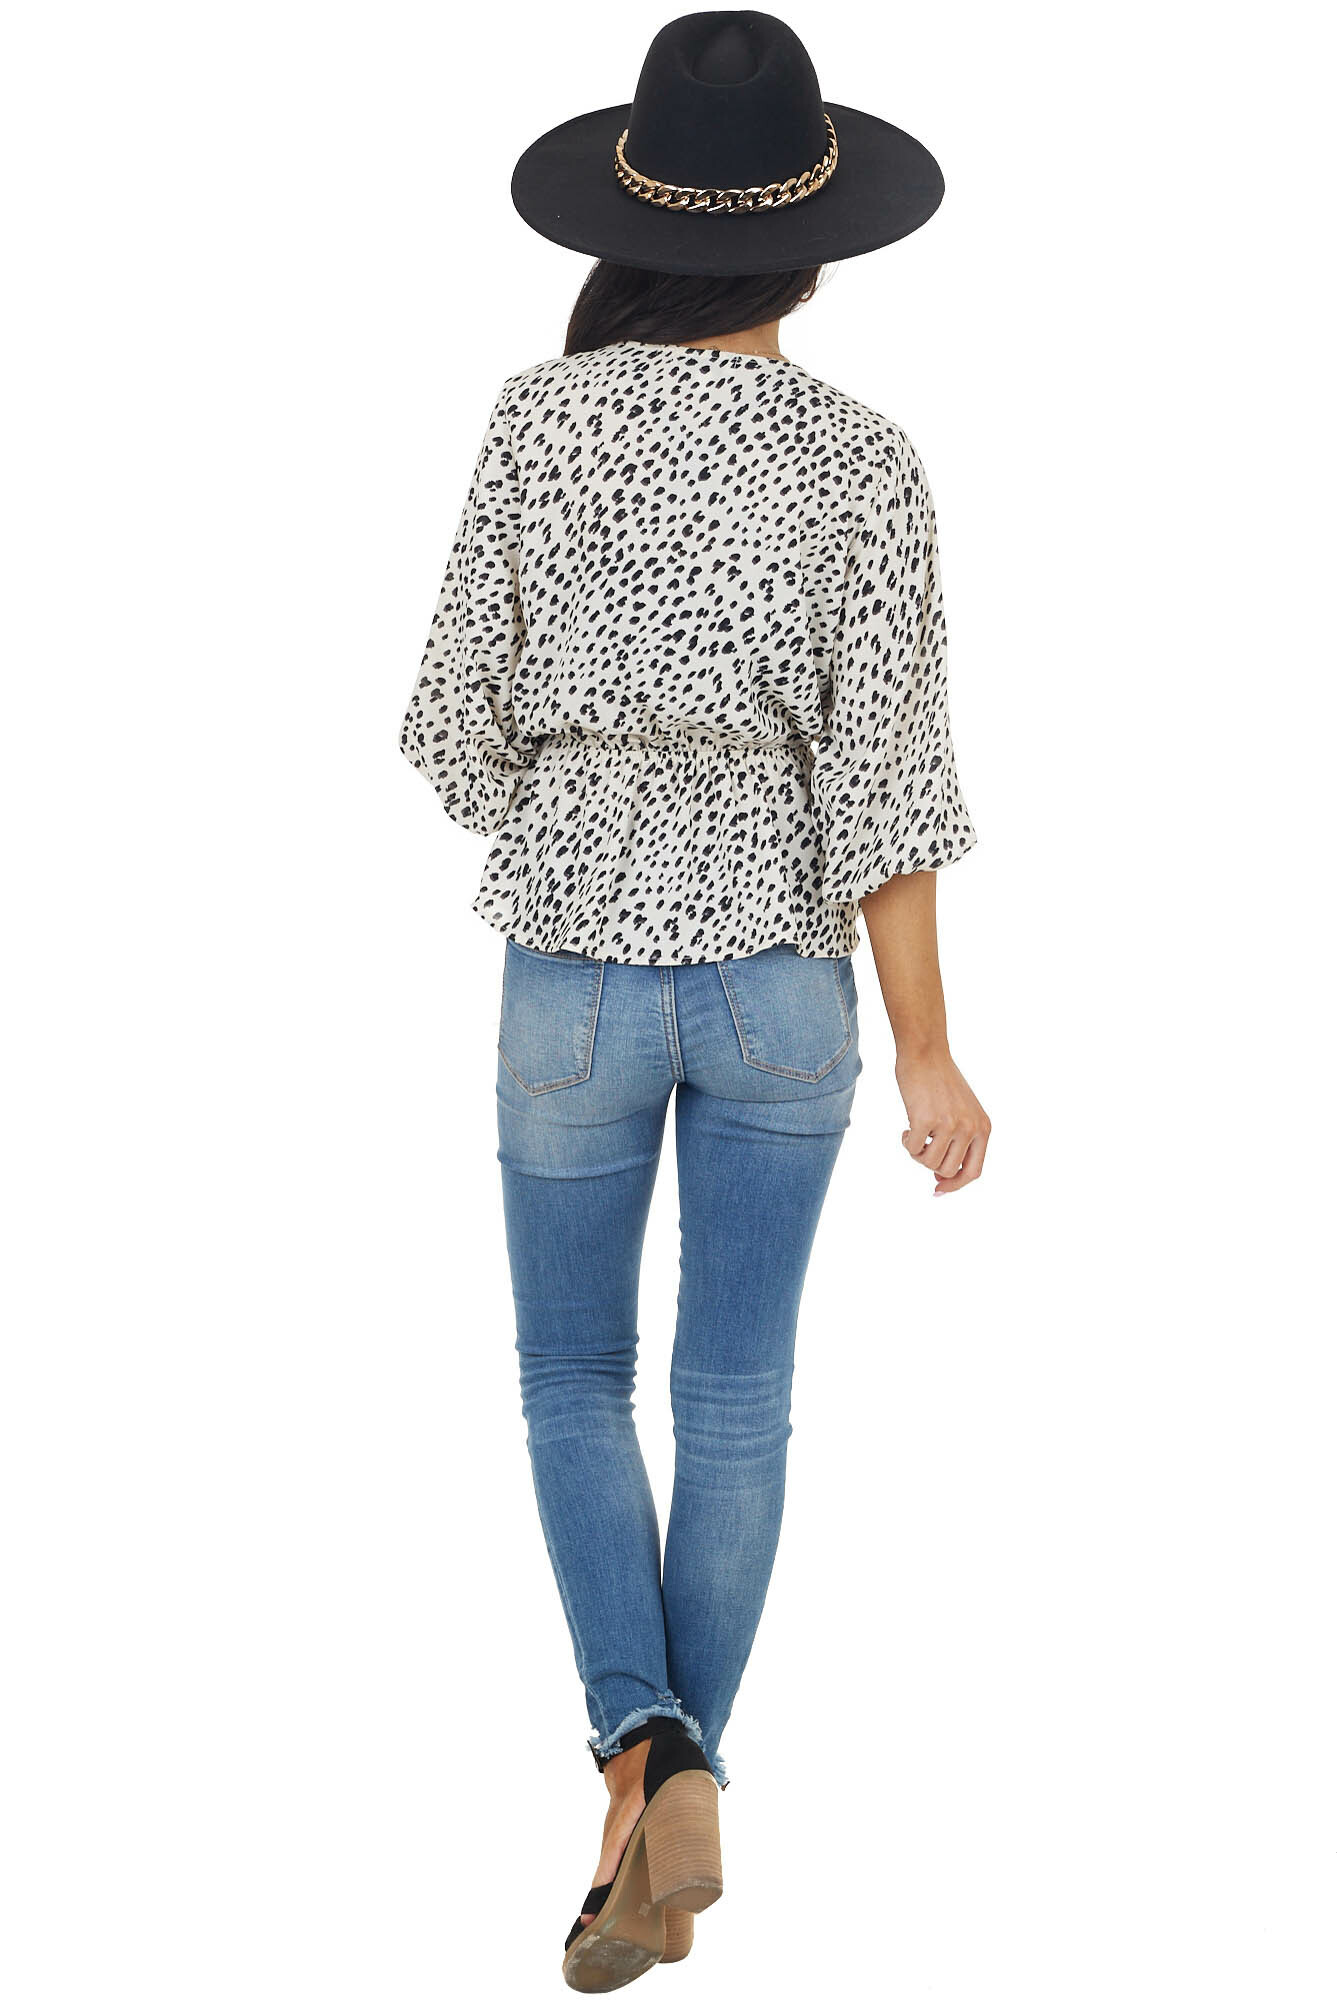 Ivory and Black Leopard Print Top with Bubble Sleeves